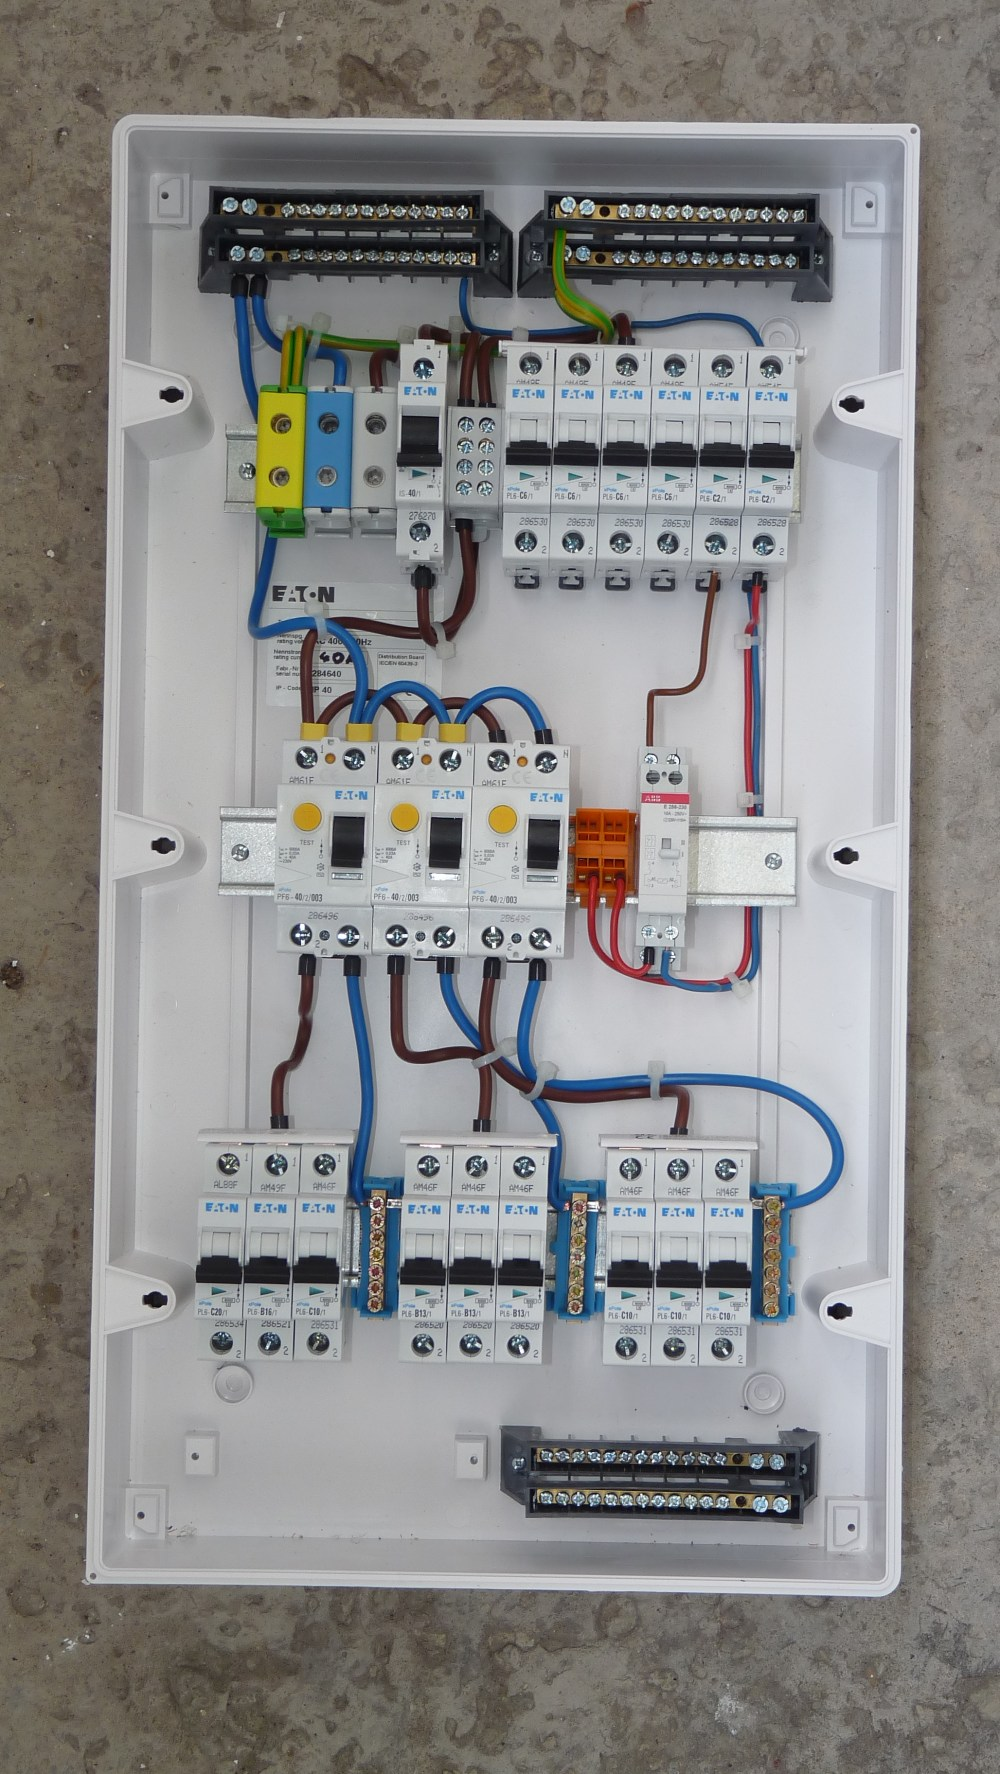 medium resolution of chart for fuse box for house wiring diagrams mon fuse box in a mobile home fuse box in a home